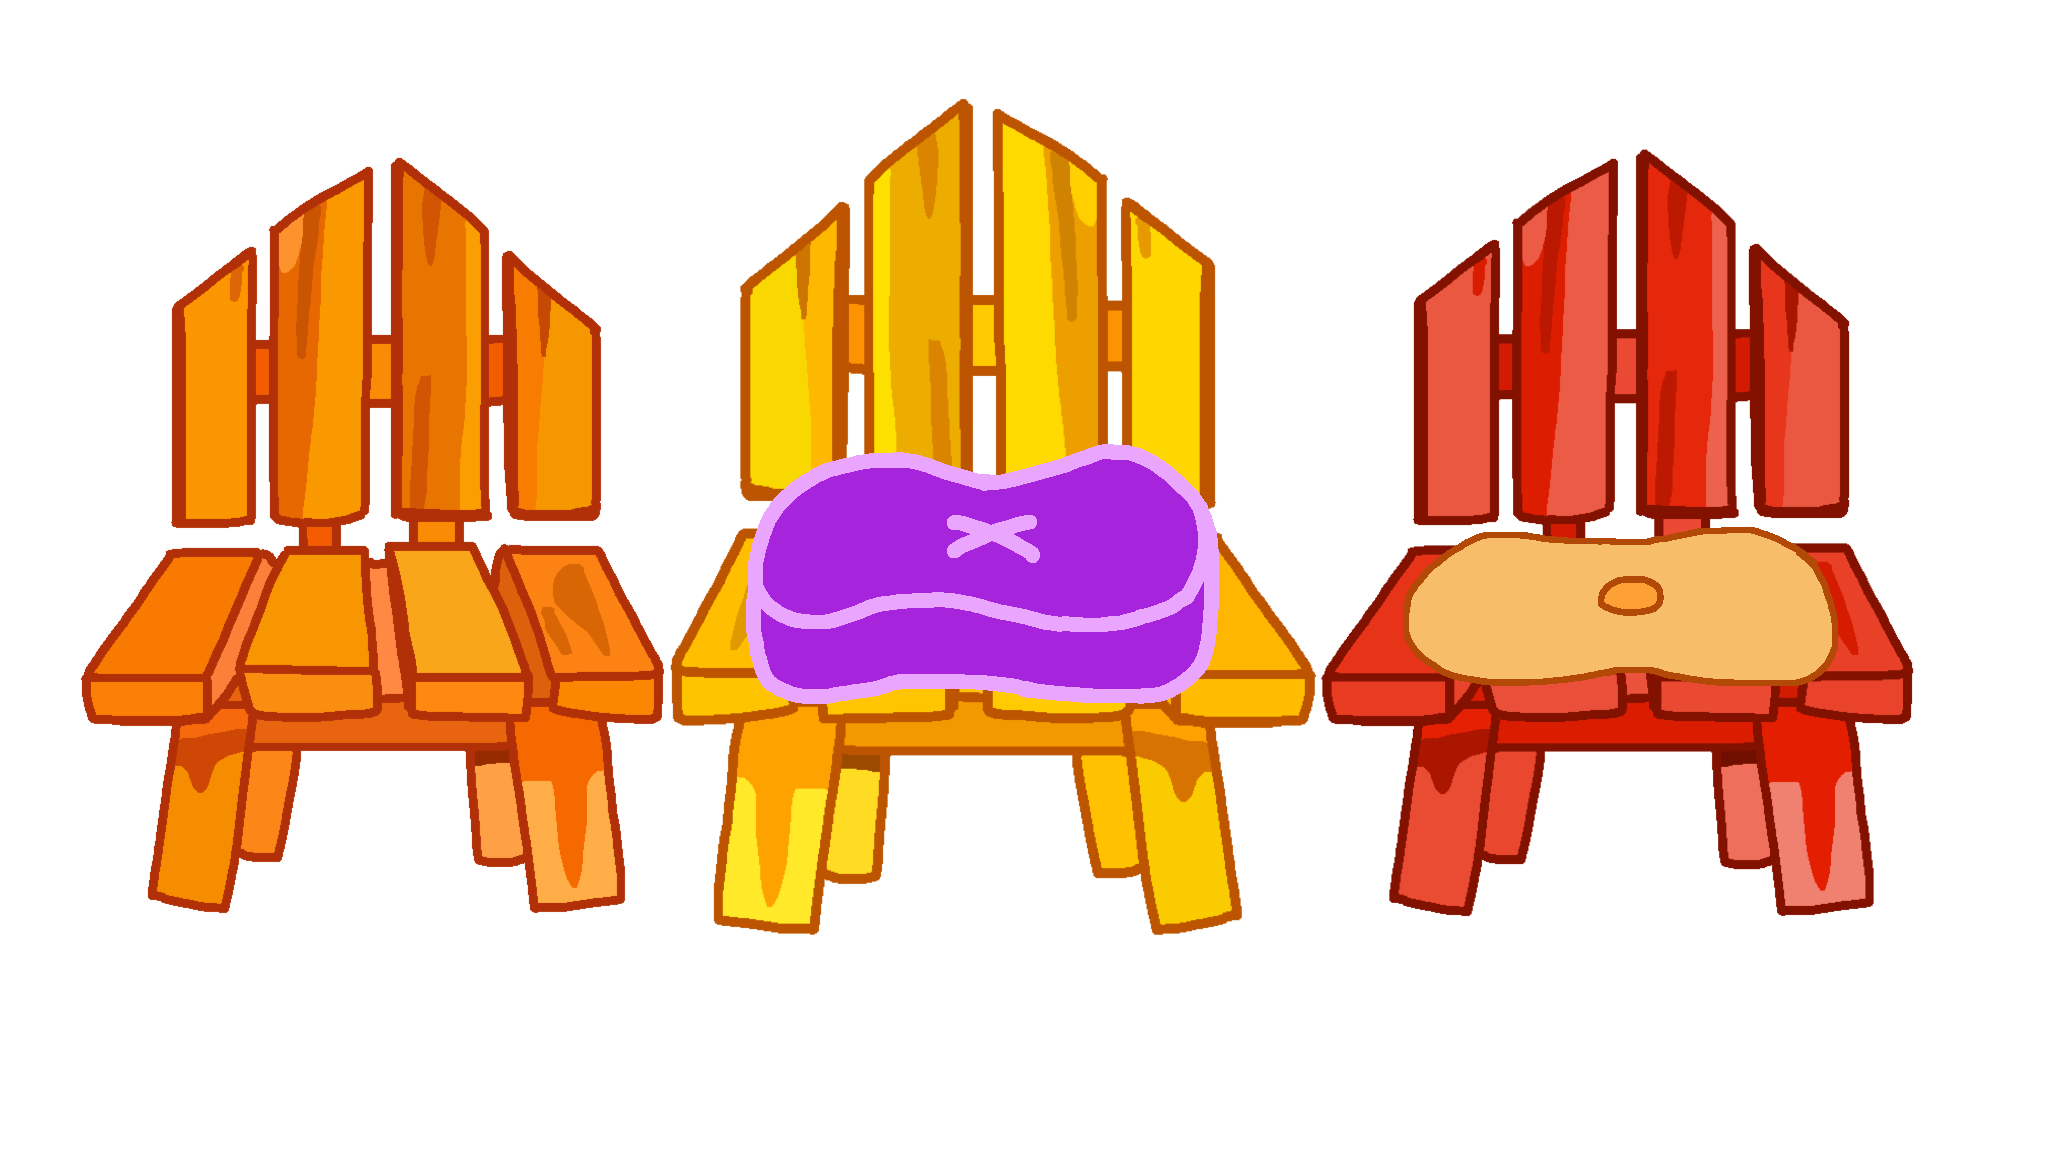 Blues Clues 3 Chairs From The Fairy Tale Ball By Casey265314 On Deviantart